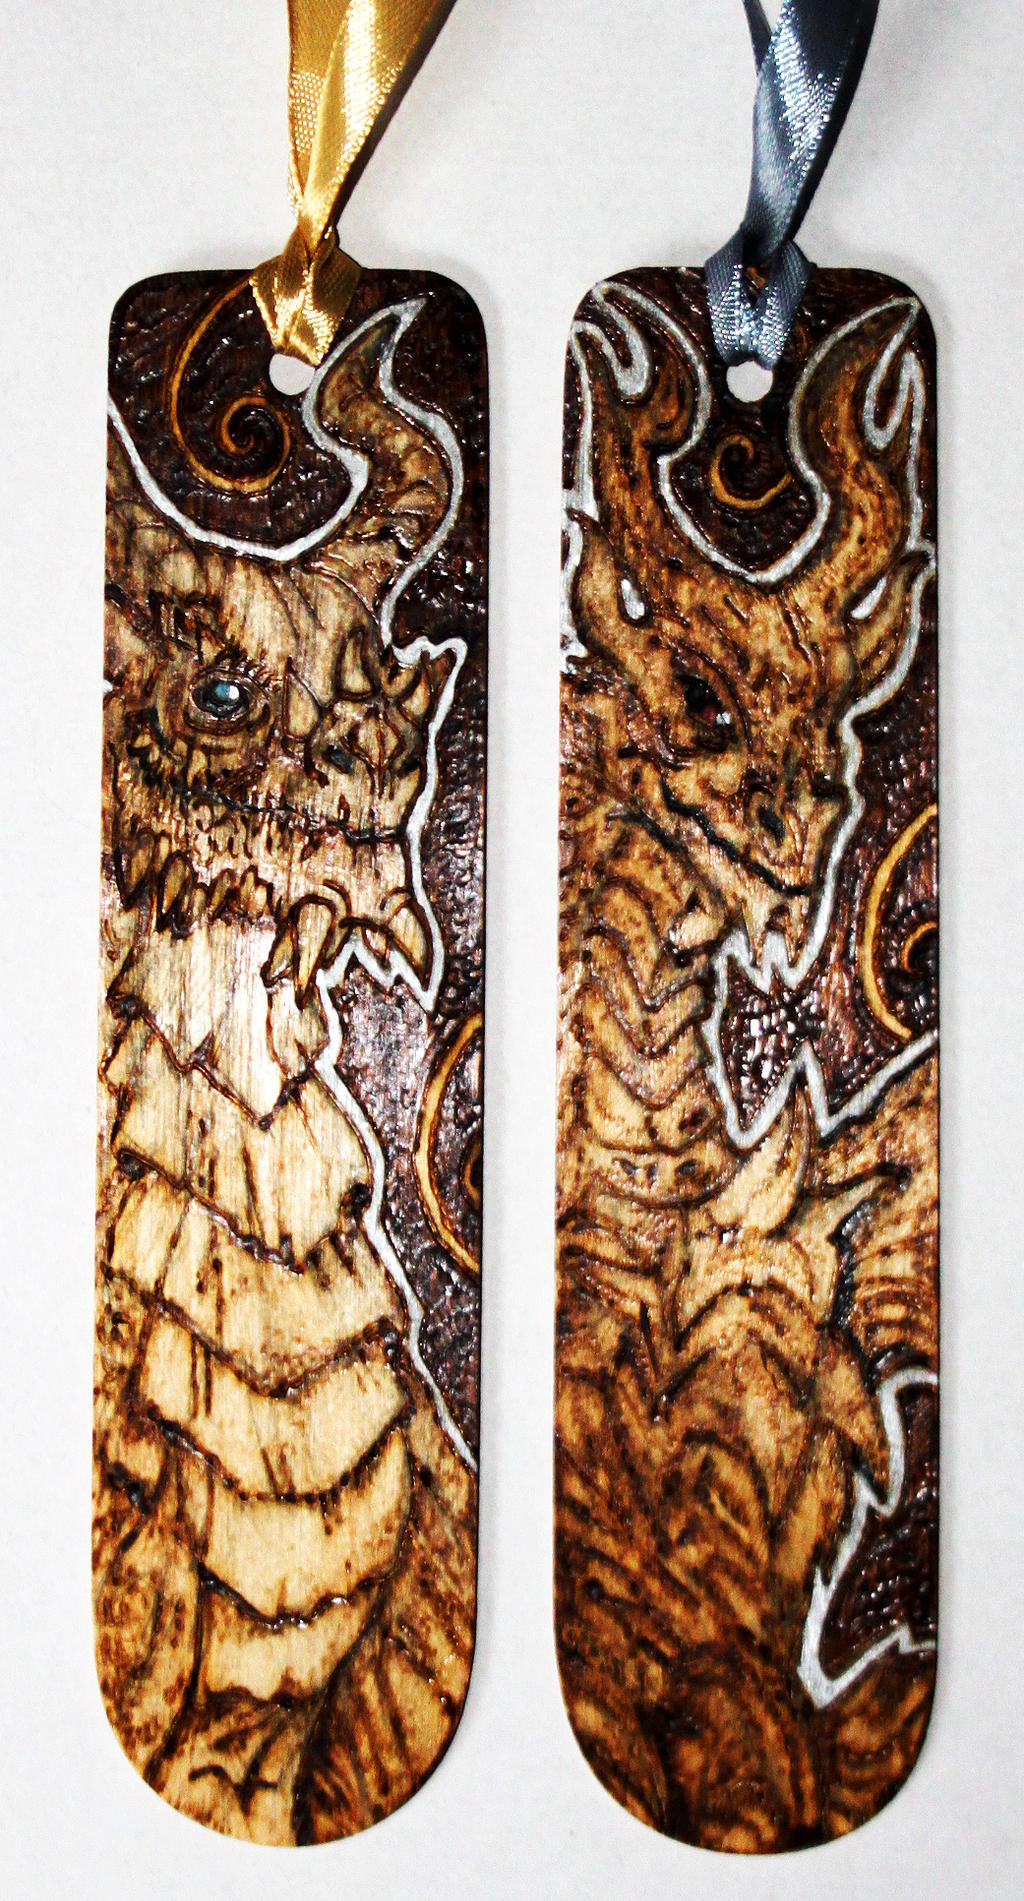 Pyrography Paarthurnax and Alduin bookmarks by BumbleBeeFairy